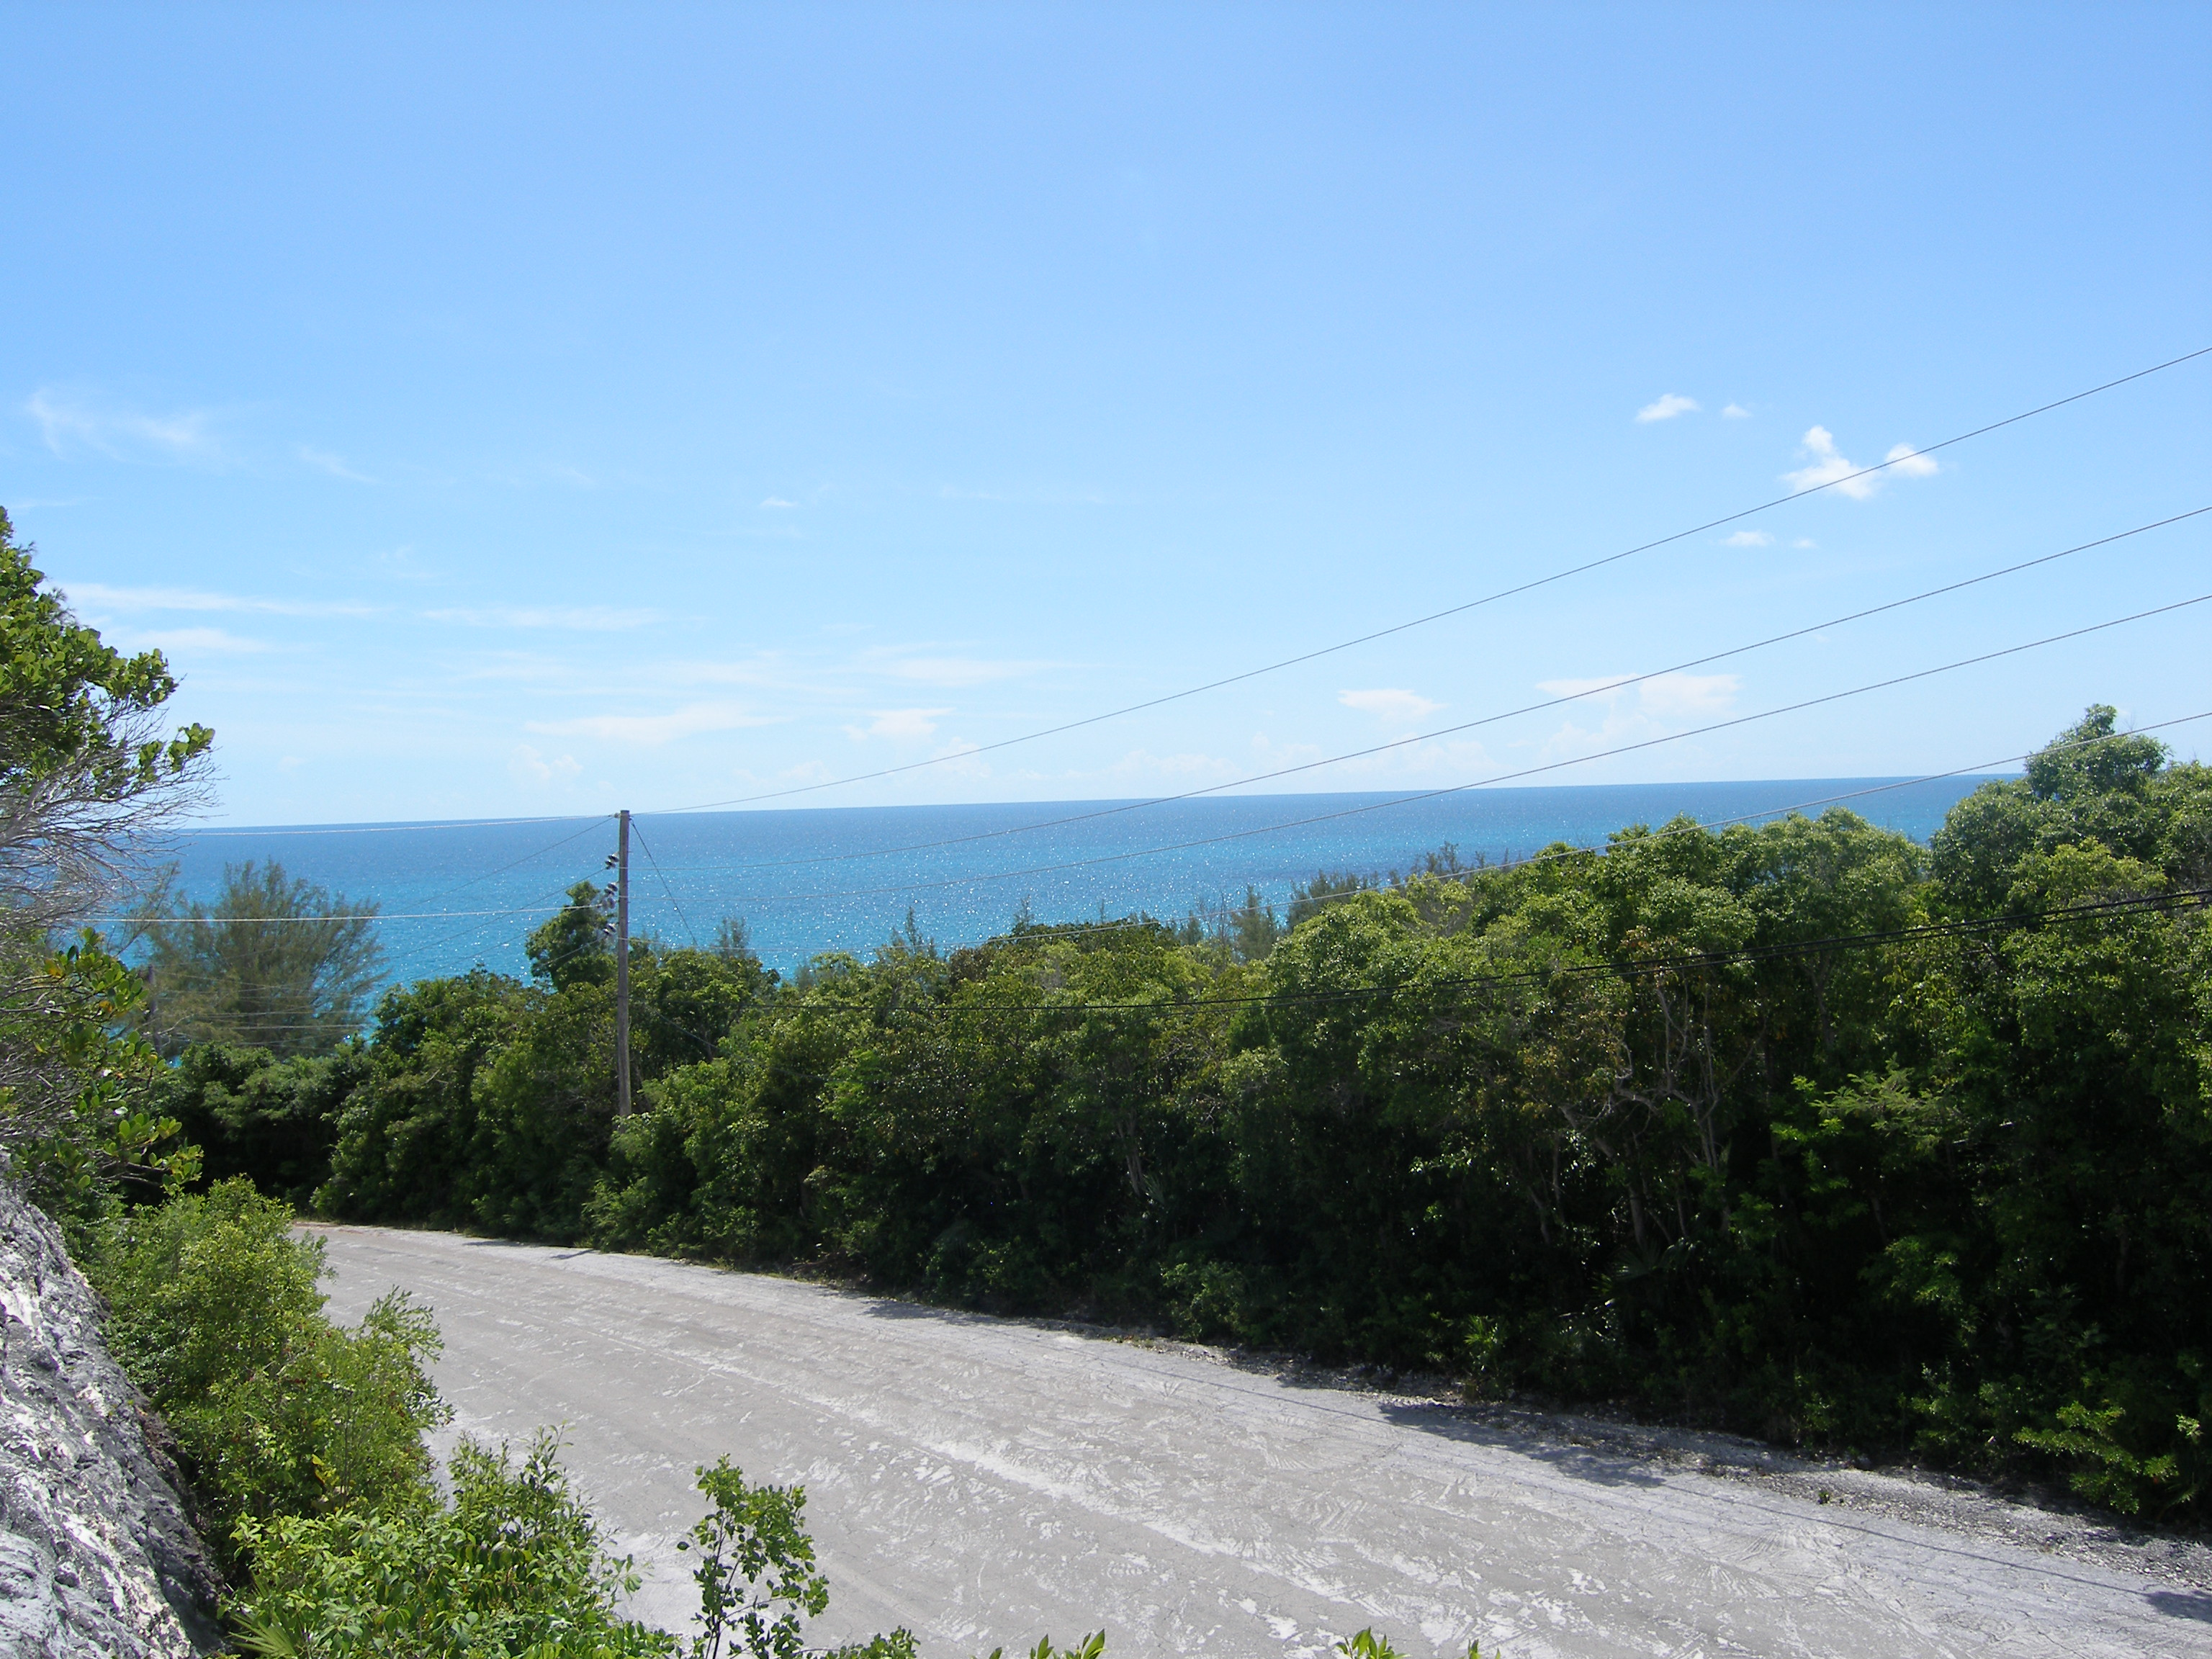 Additional photo for property listing at Lot 6 & 7 Block 1 Section A Eleuthera, Eleuthera Bahamas